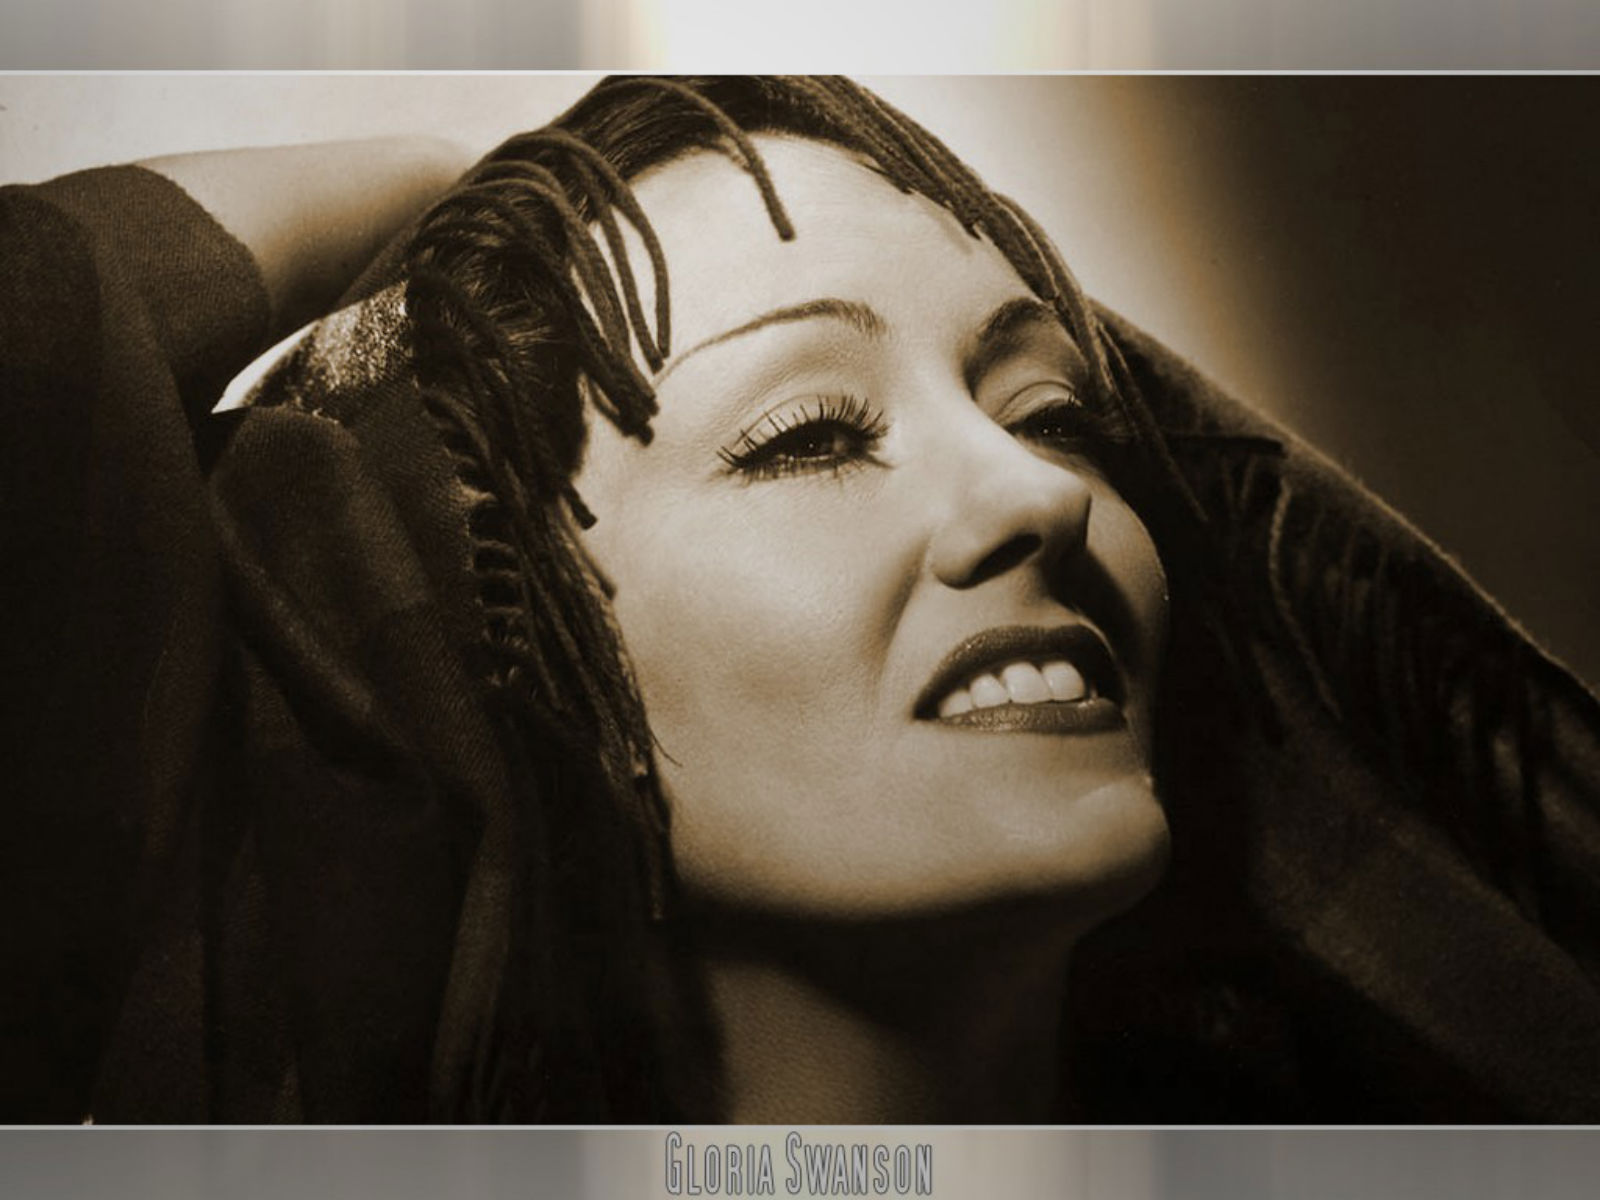 Gloria Swanson Widescreen for desktop